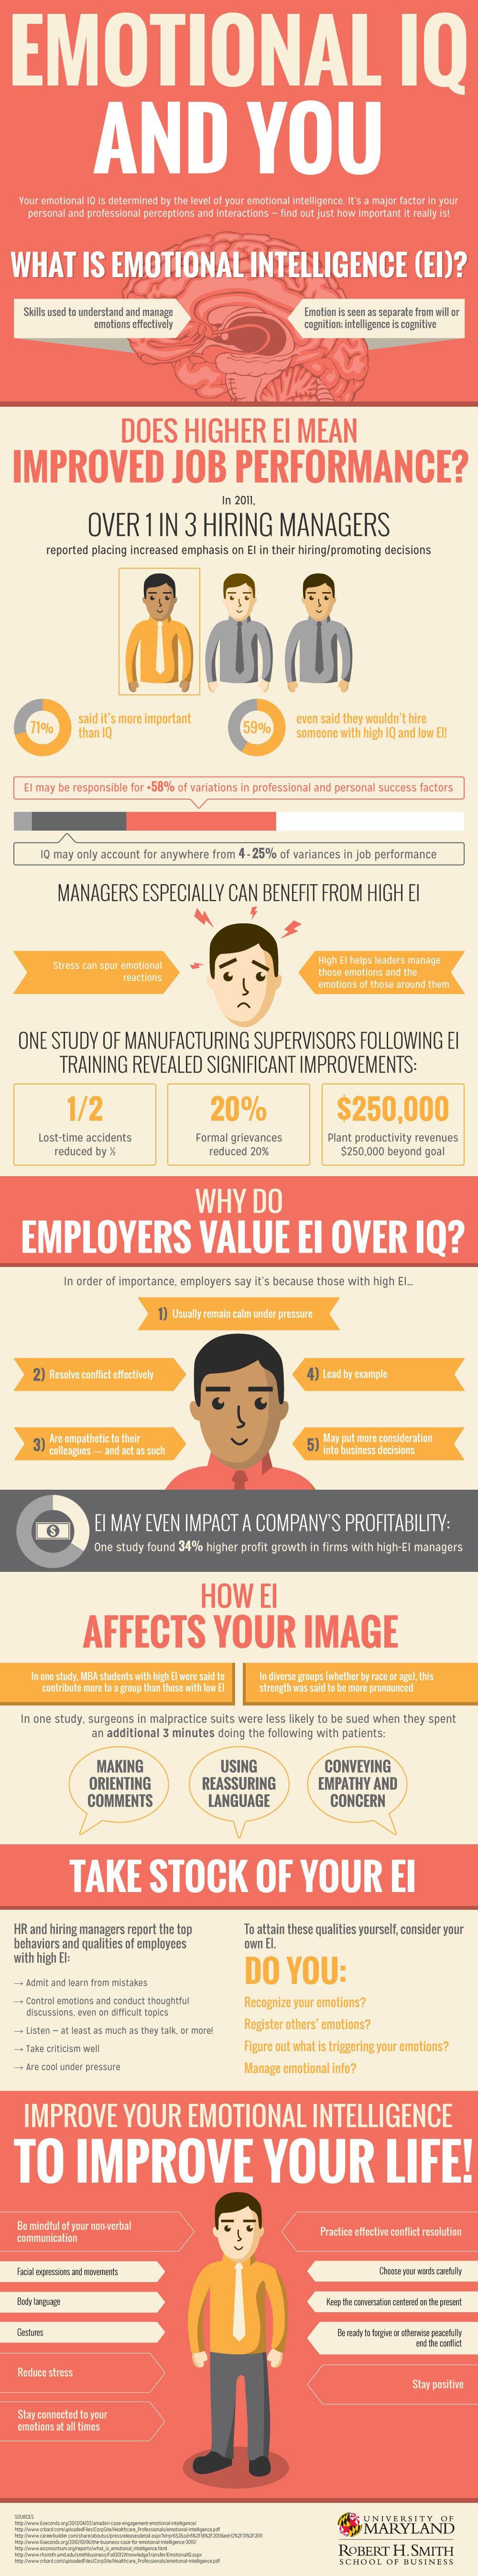 Emotional Intelligence for Your Career?